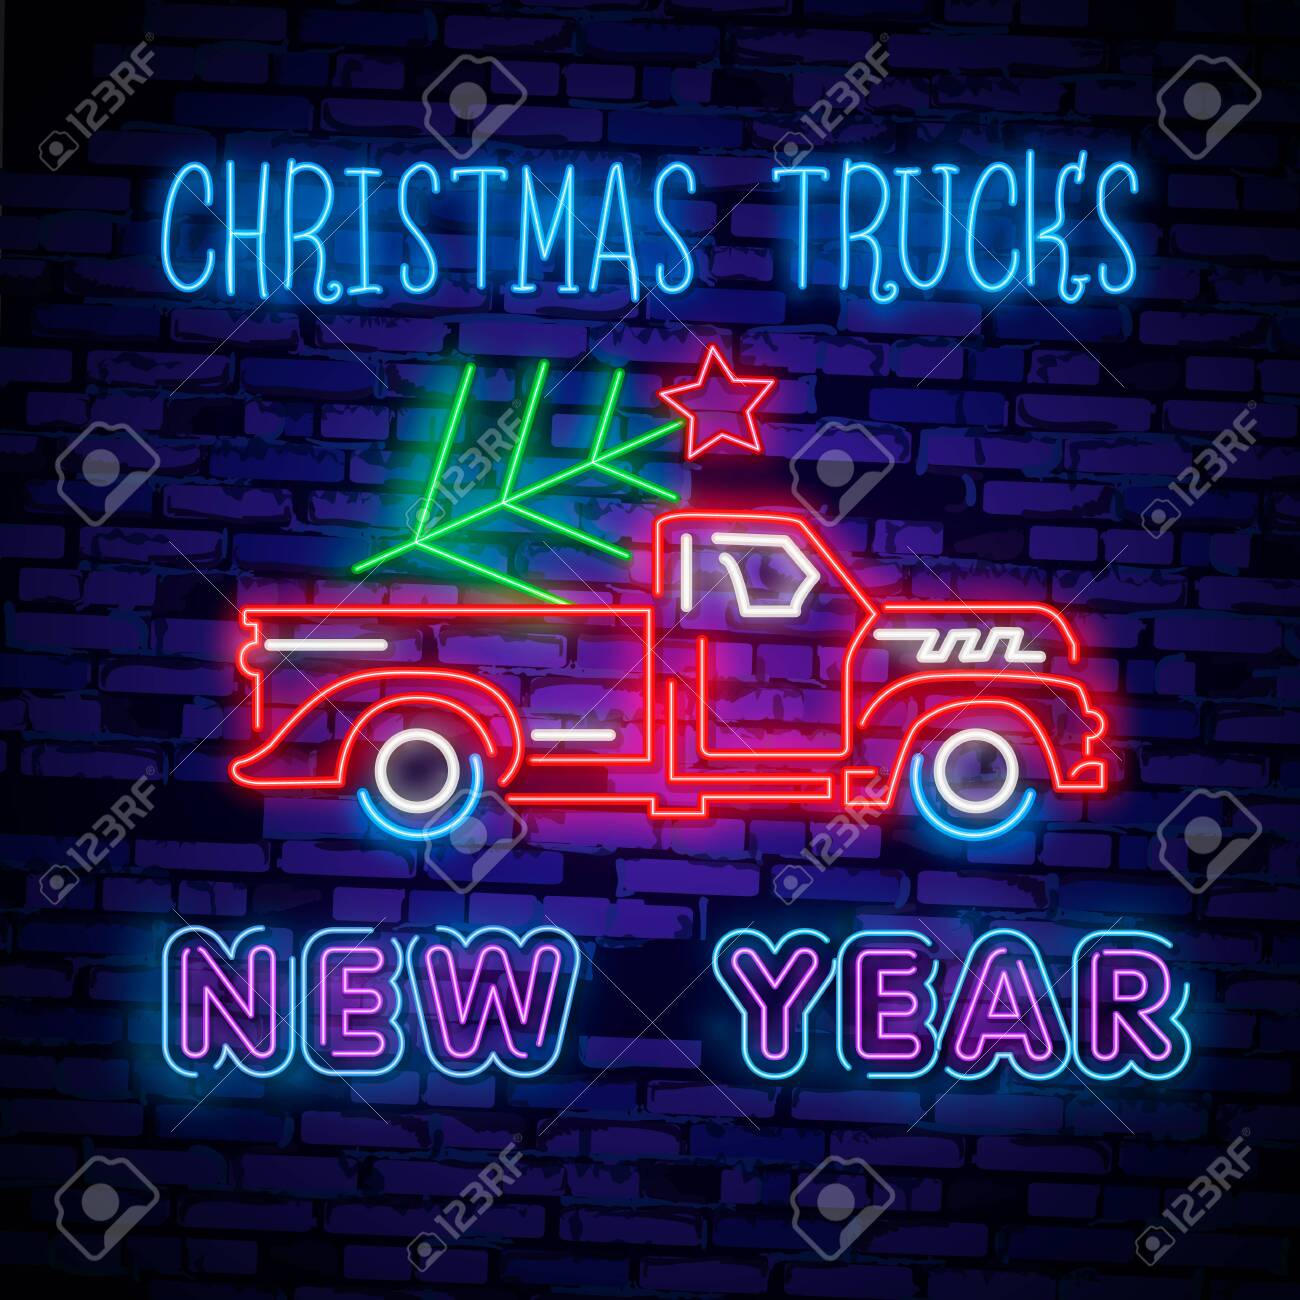 Christmas Red Truck.Christmas Truck Vintage Vector Illustration Christmas Red Truck